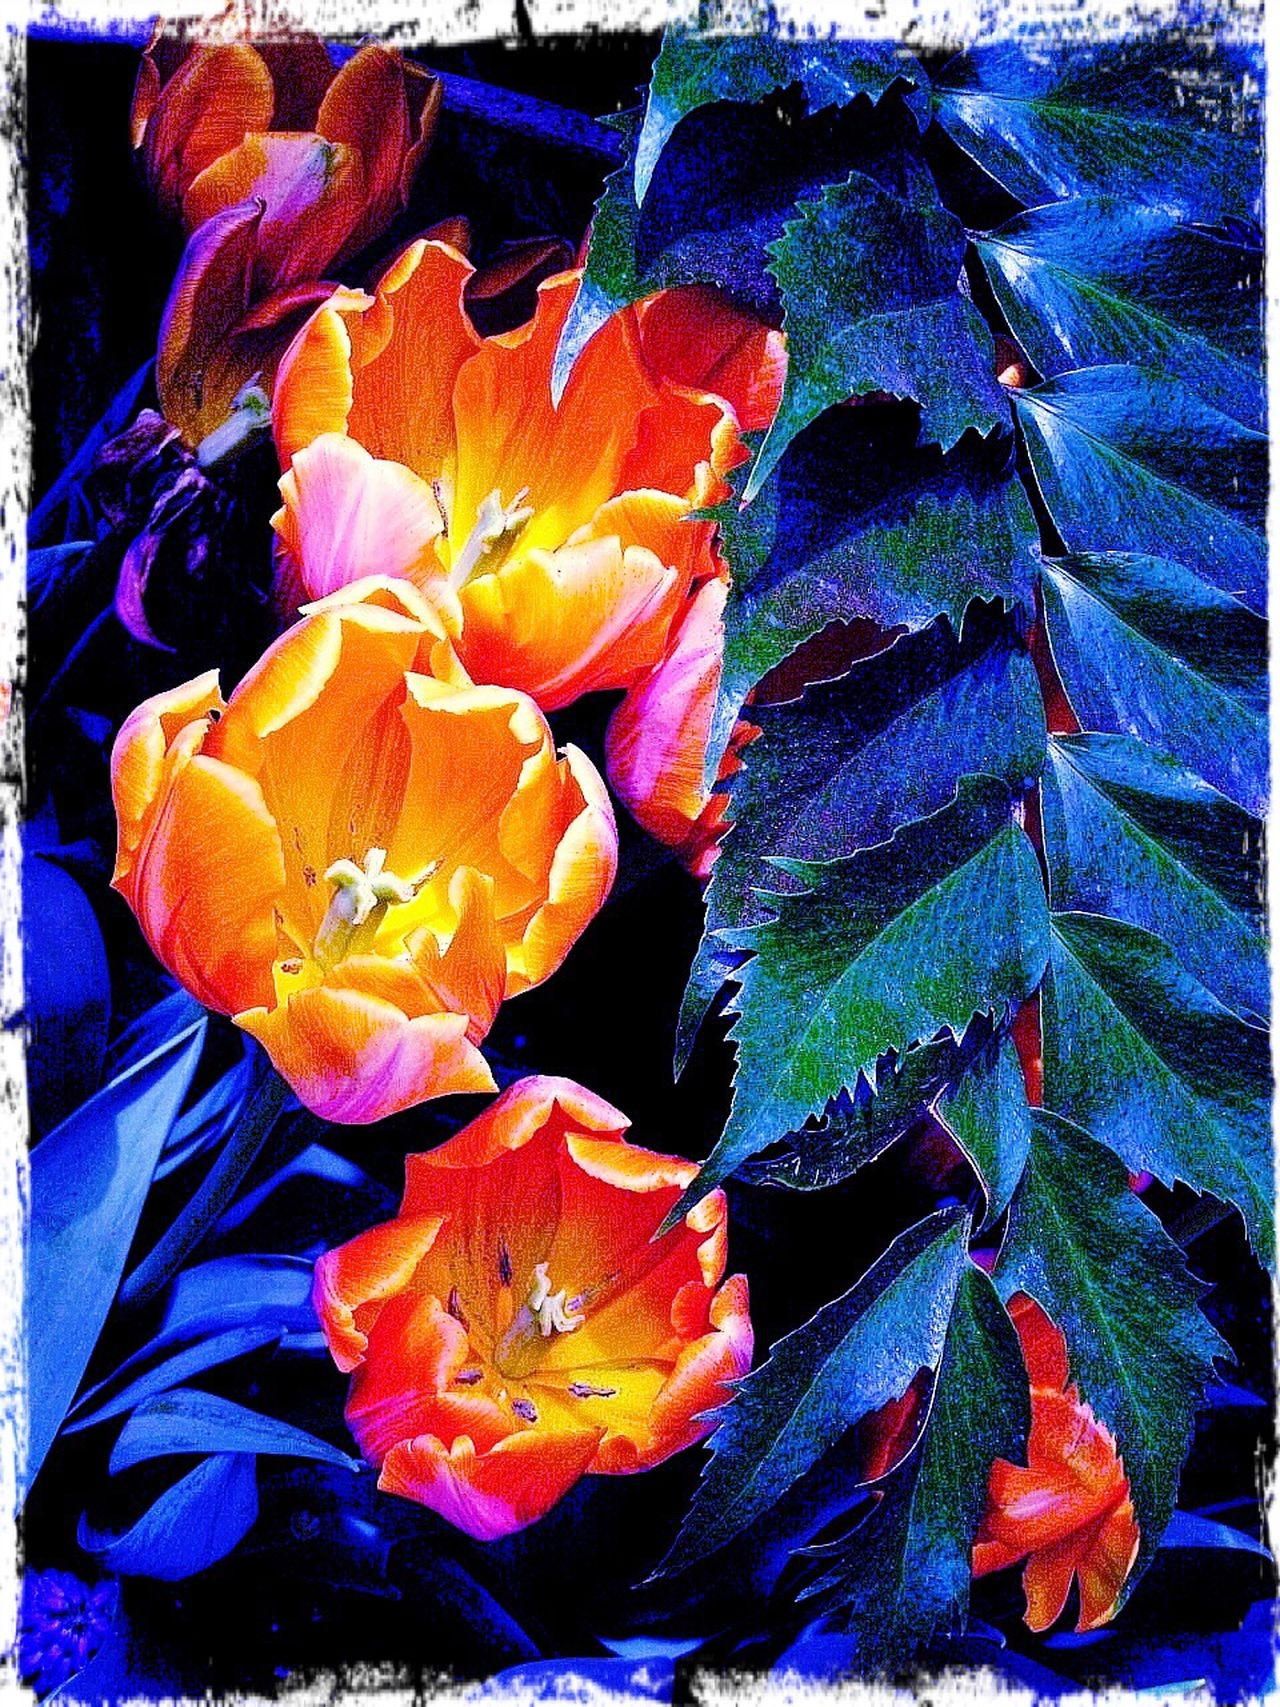 Flowers summer Outdoors garden Park tulips Orange Tulips nature Blue Shade light and dark Sunshine And Shade Stark Contrast